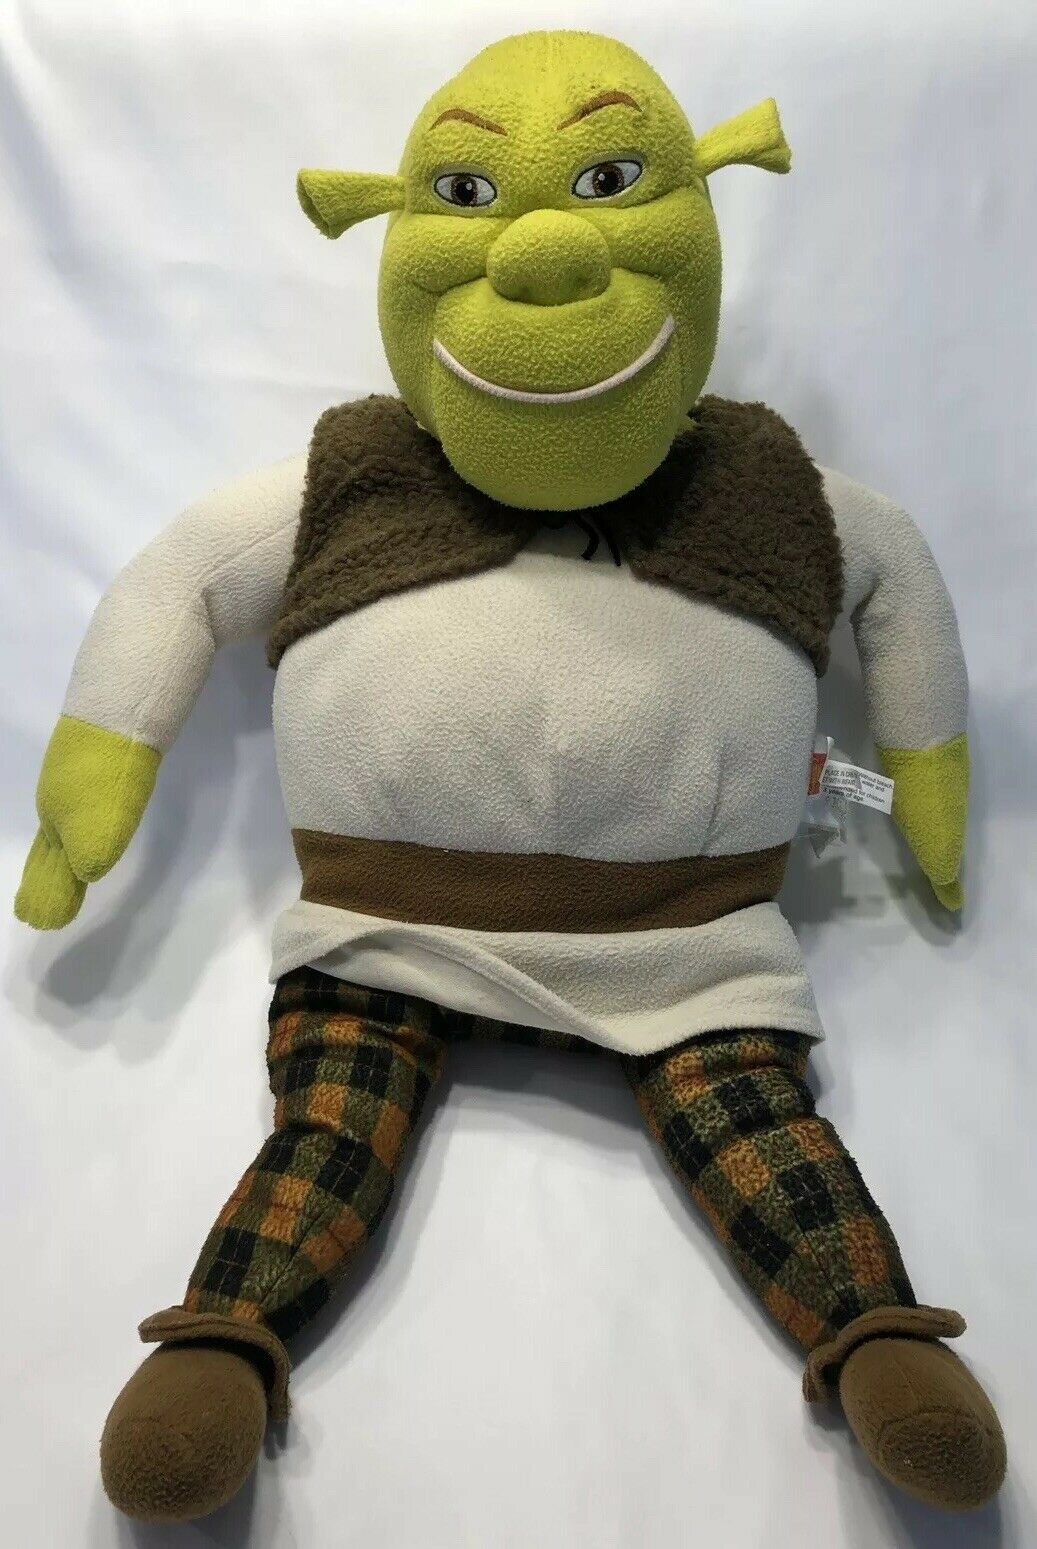 Shrek 2 Plush 29  2004 Jumbo Stuffed Stuffed Stuffed Pillow Green Ogre Plaid Pants, Vest e07517